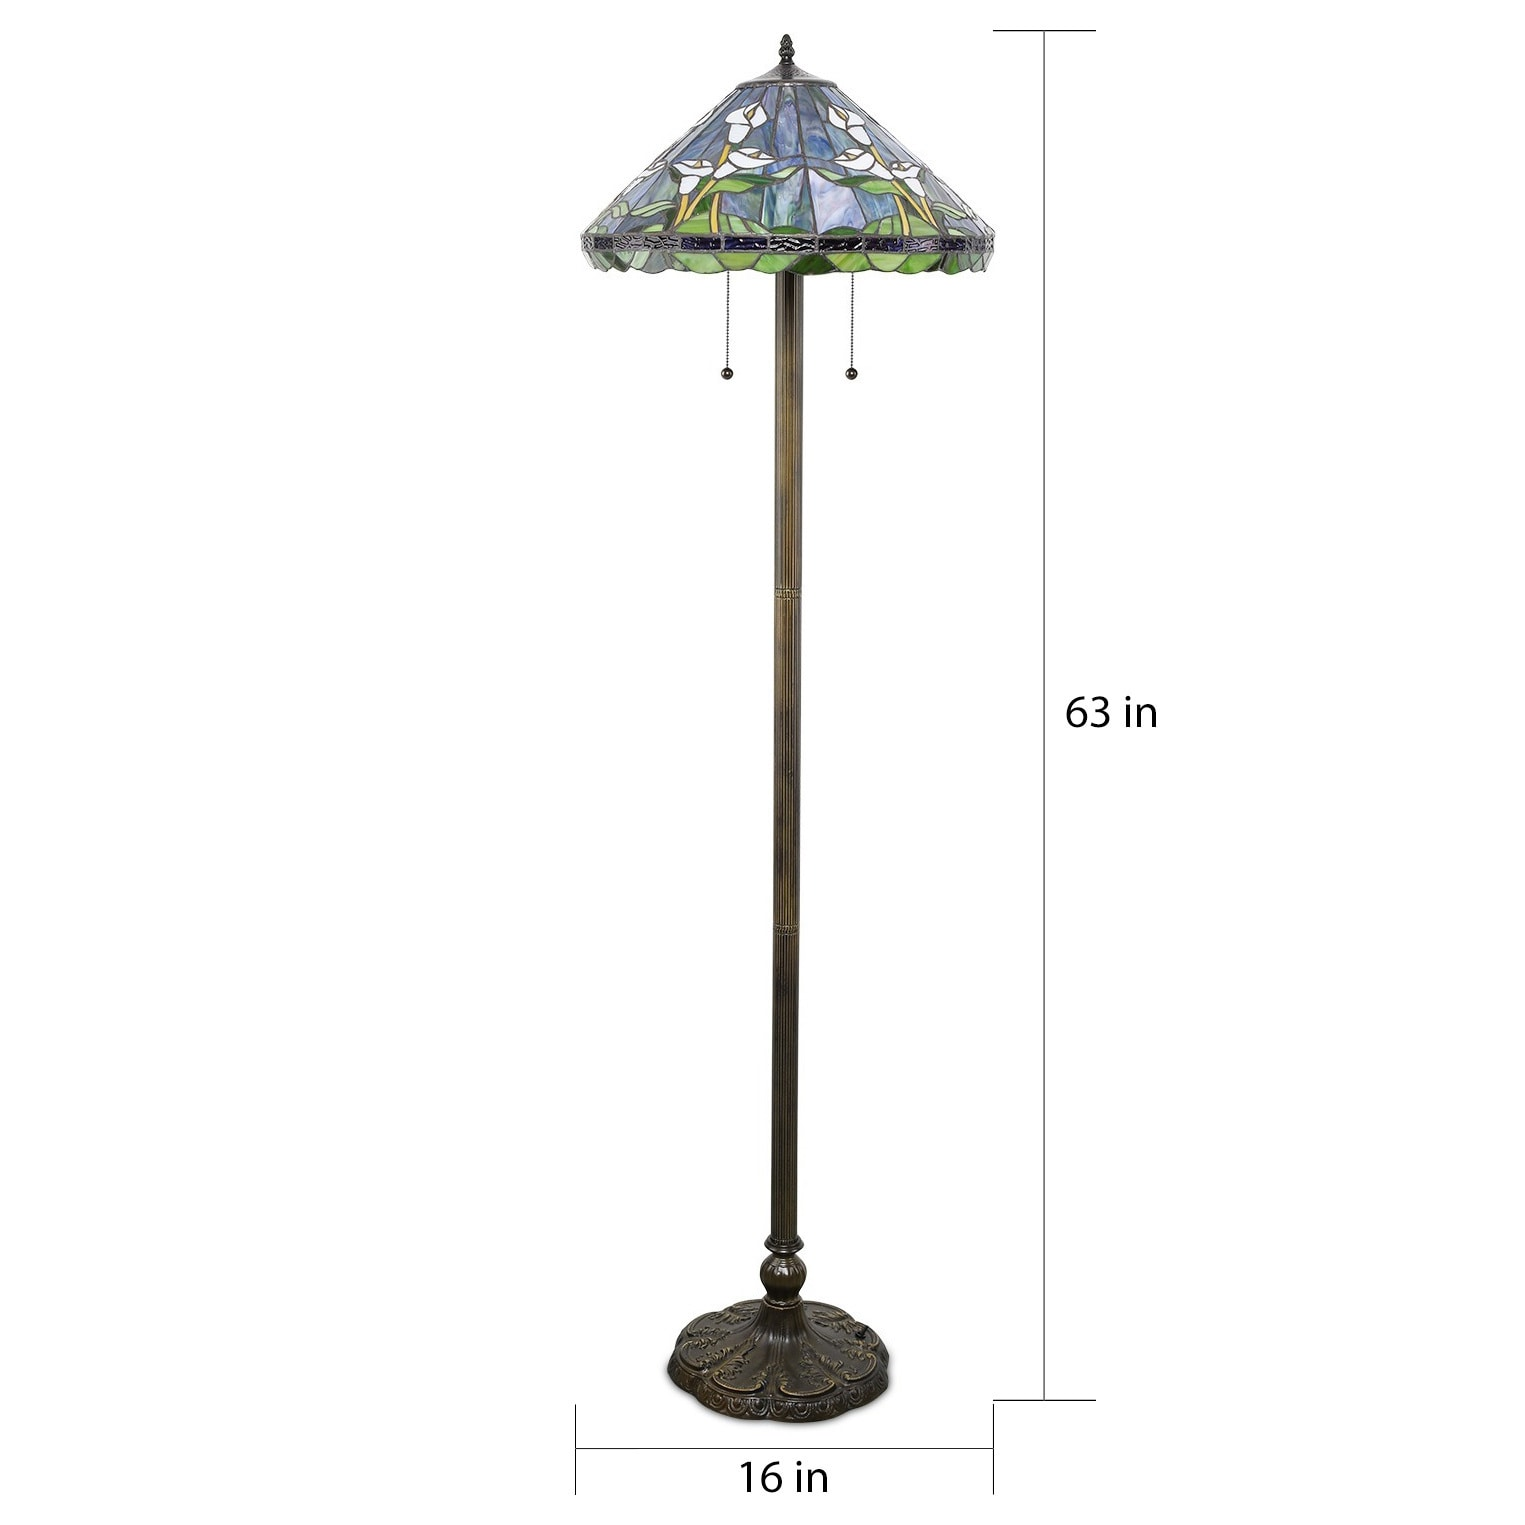 floor me table lamps glass tiffany aztec lamp juanjosalvador mission style stained